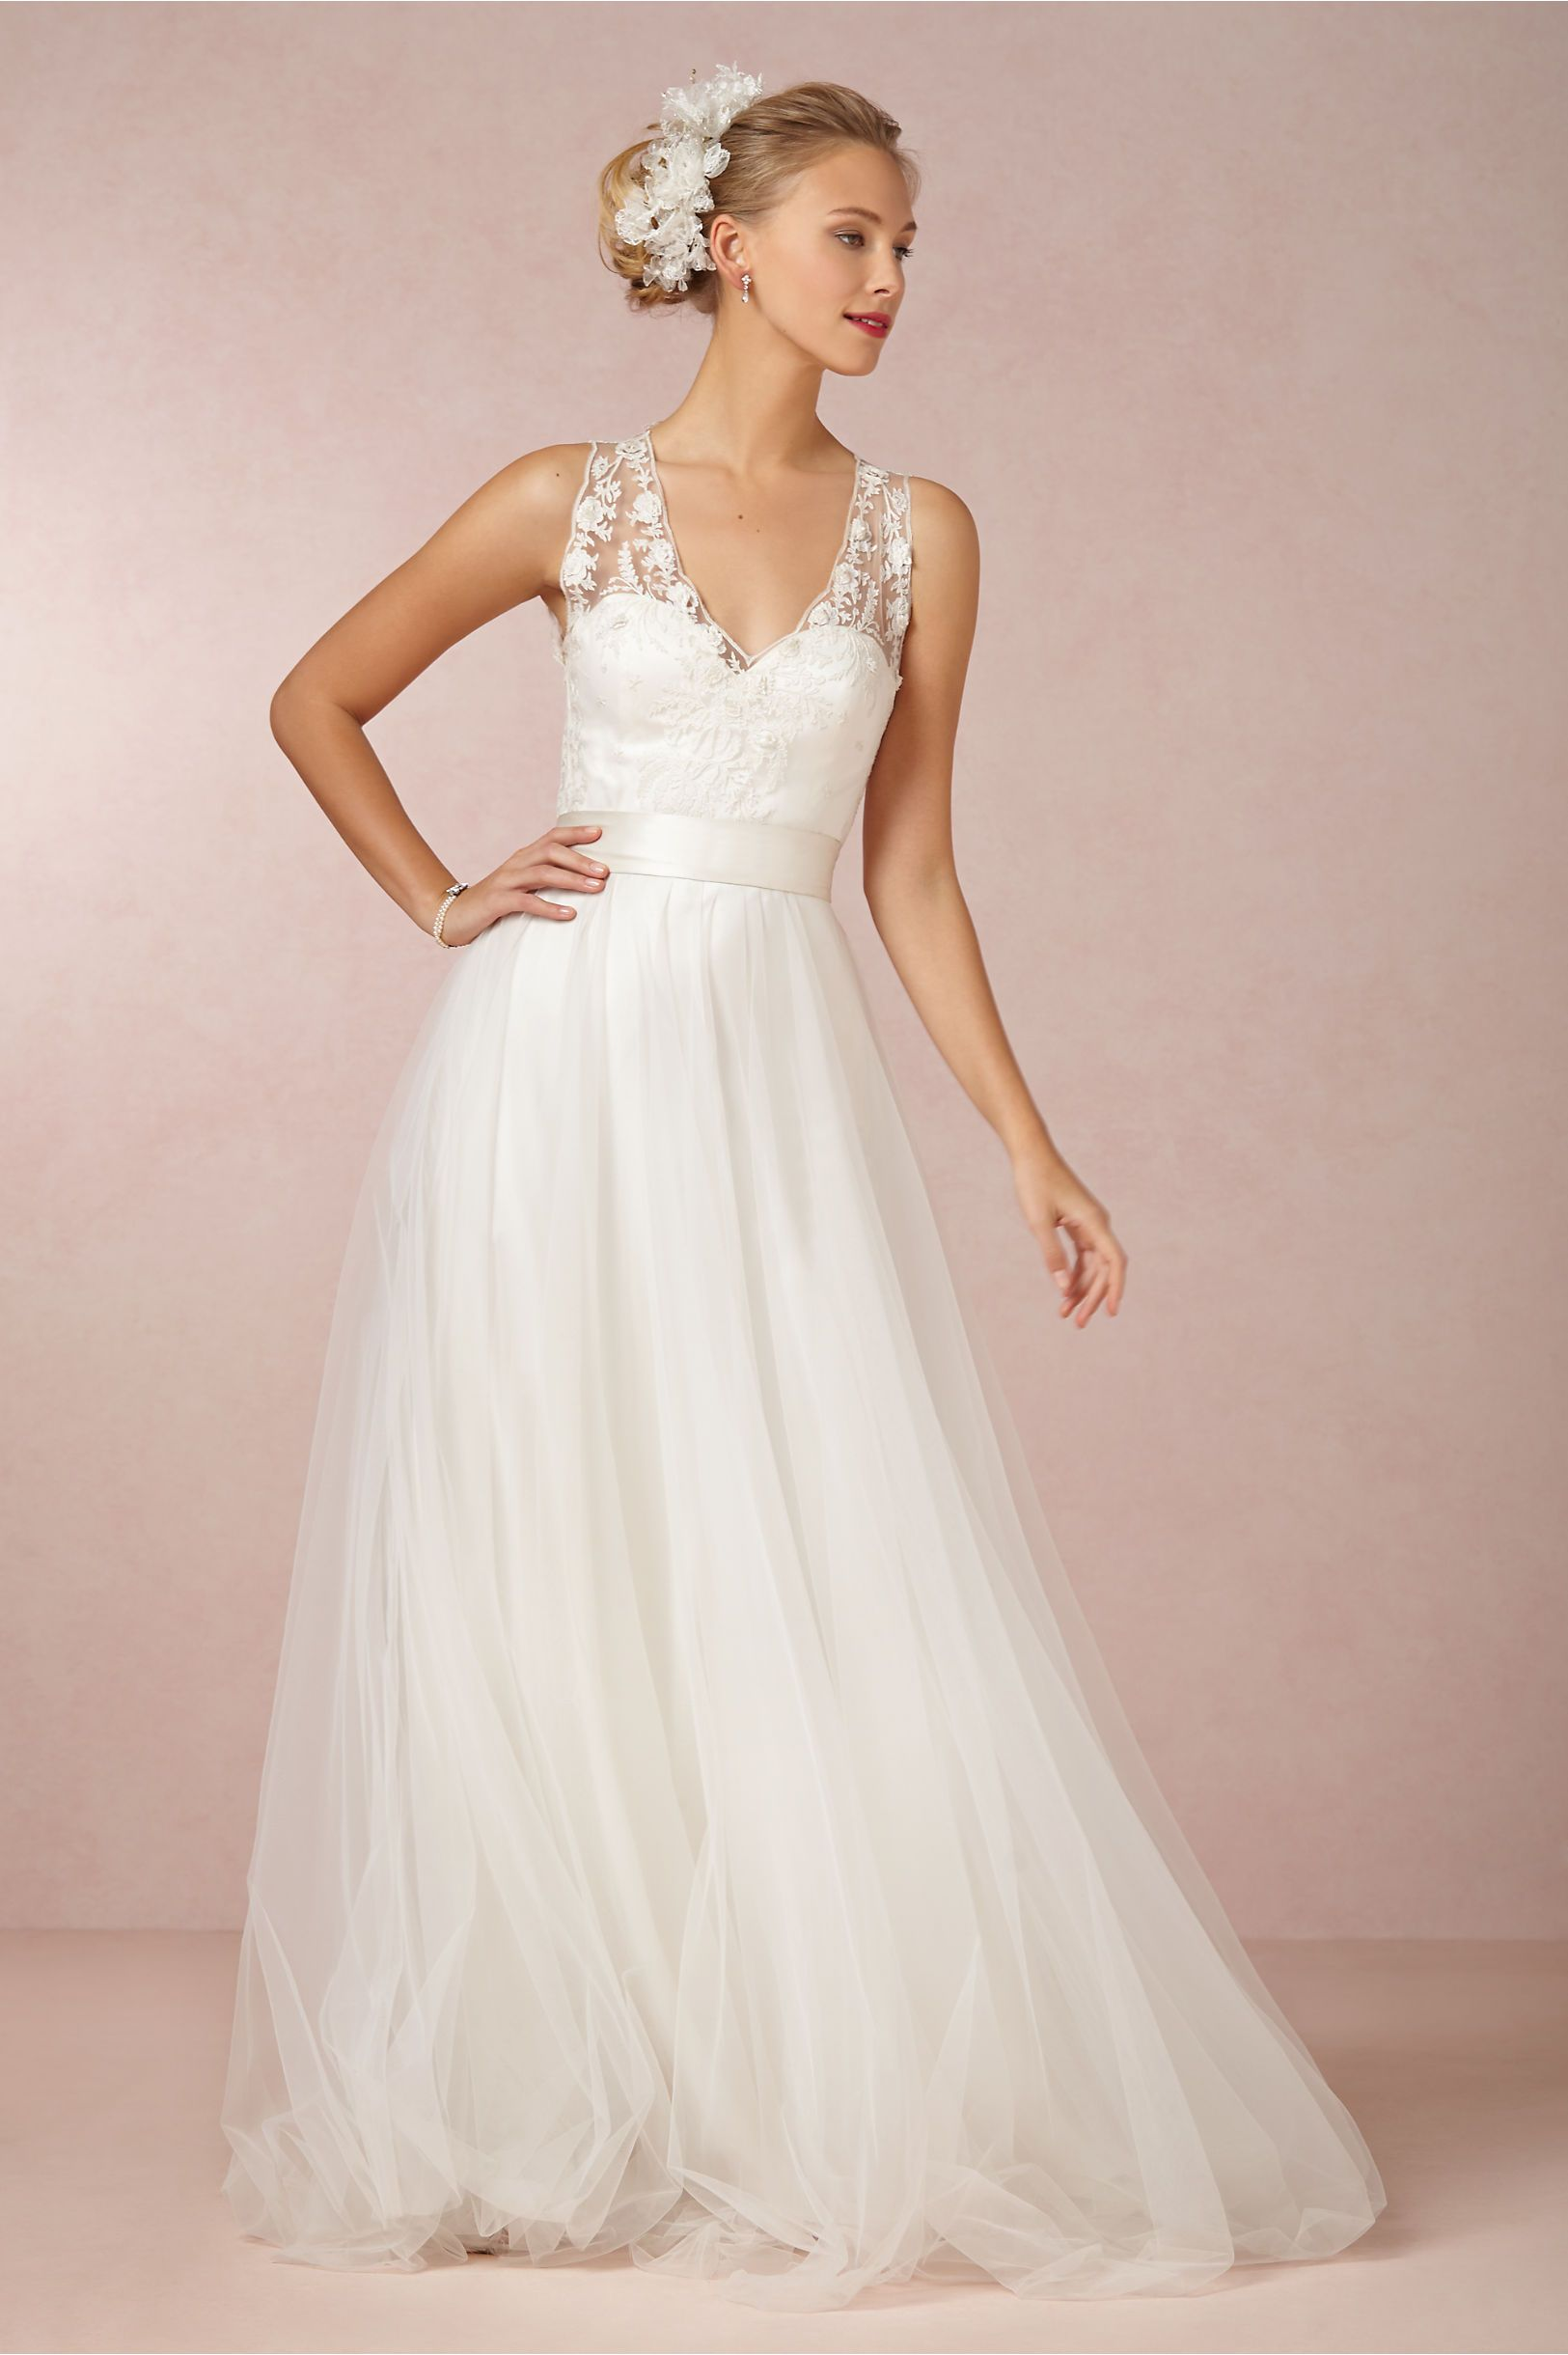 BHLDN Onyx in Ivory Catherine Deane Size 2 Wedding Dress | Gowns ...